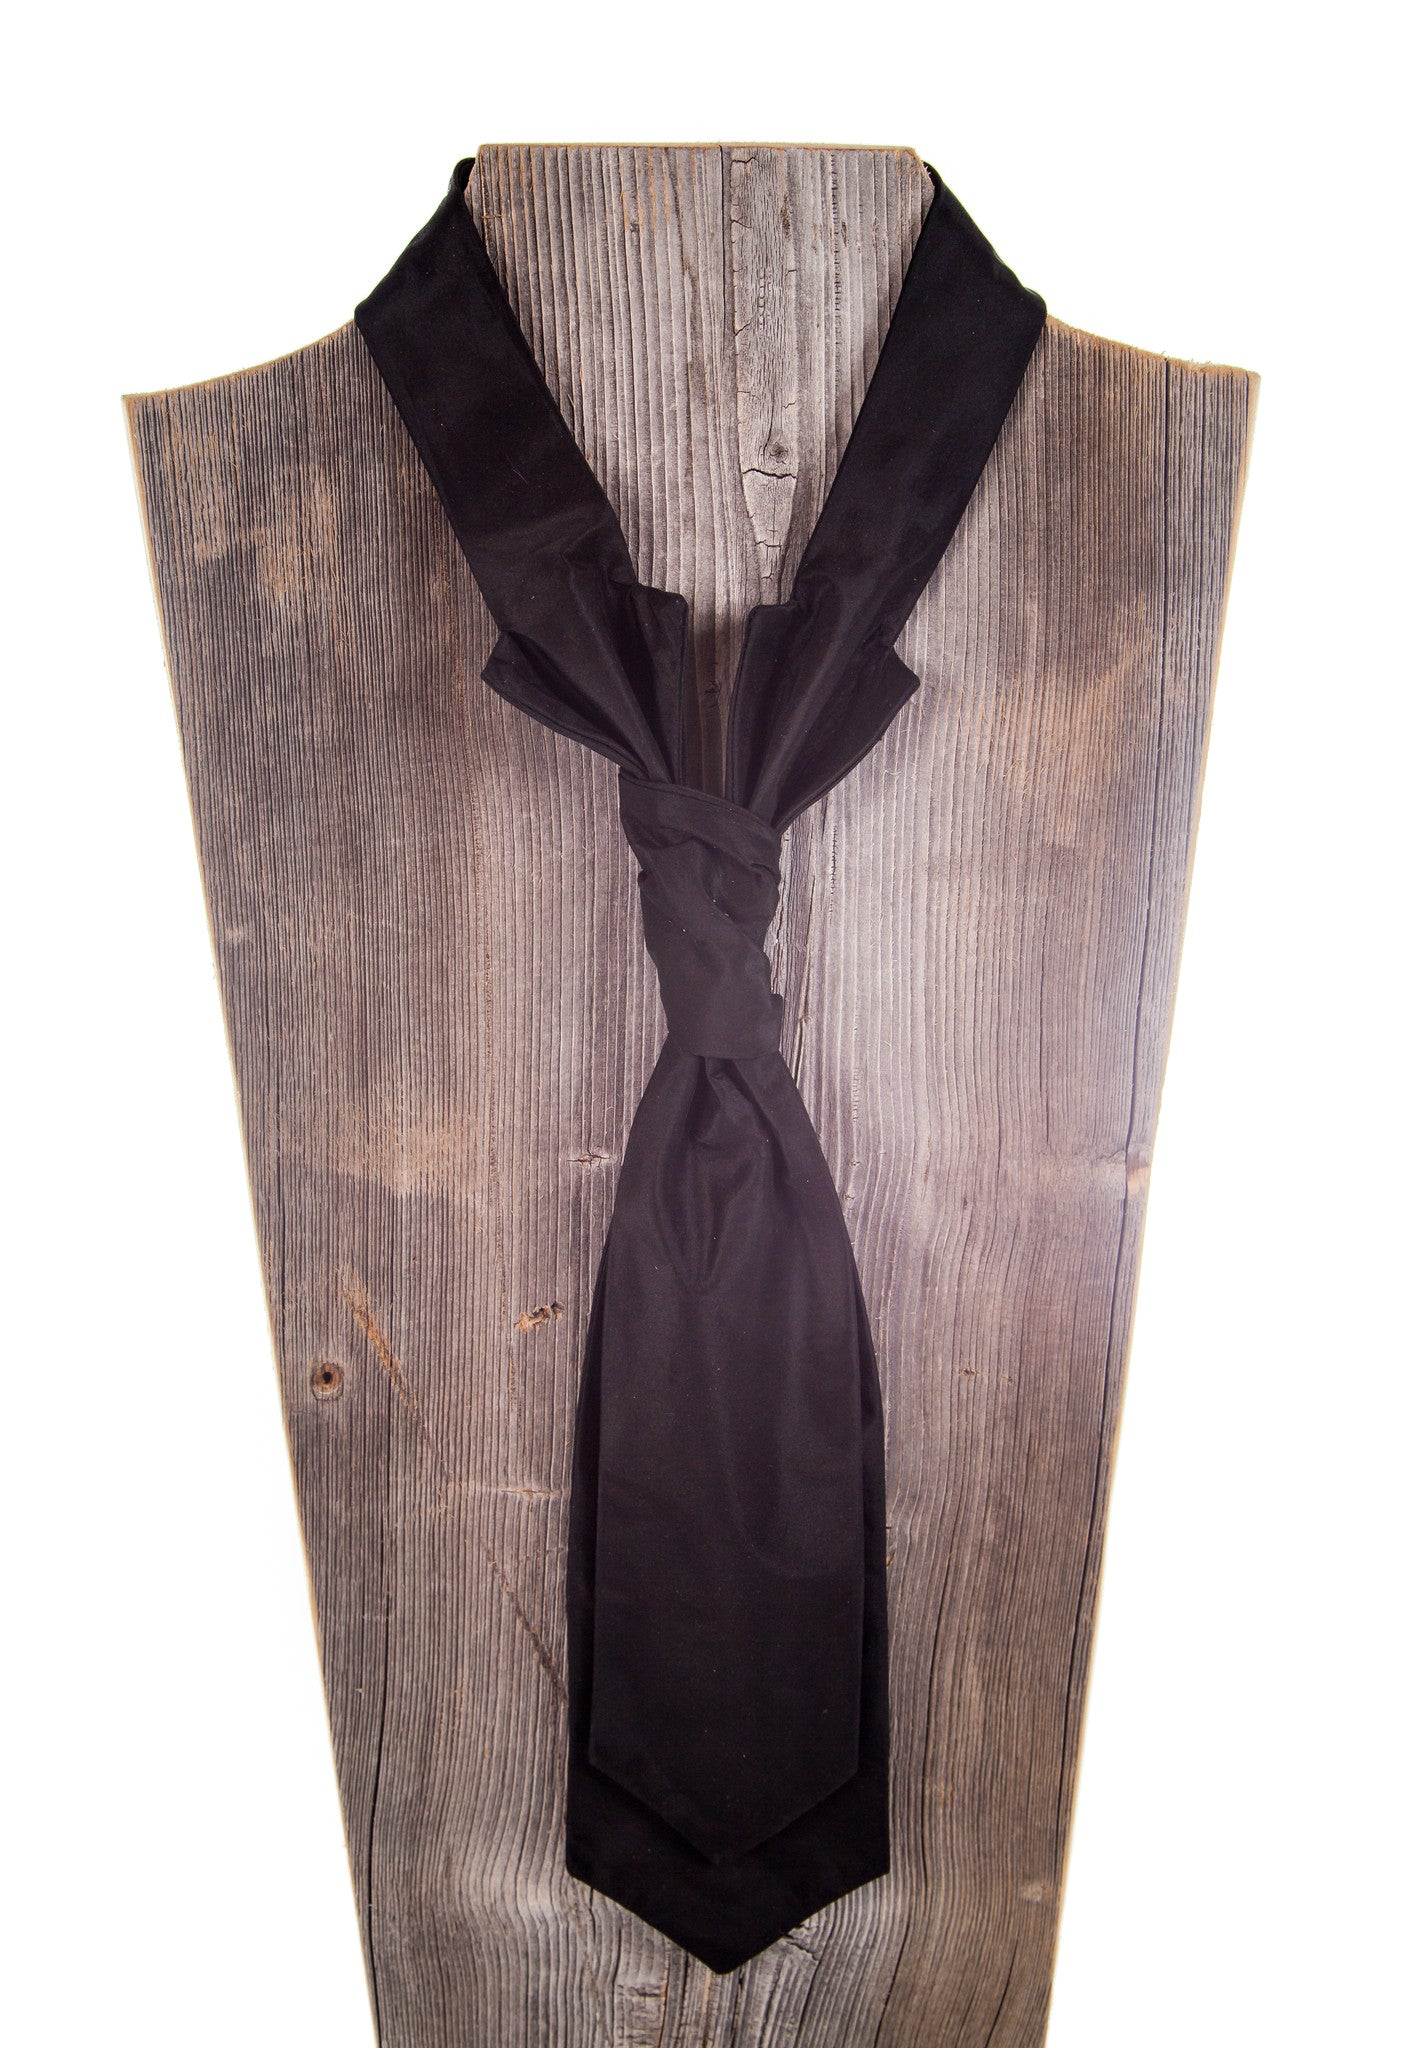 Black Silk Taffeta-Fabric by Carolina Herrrea